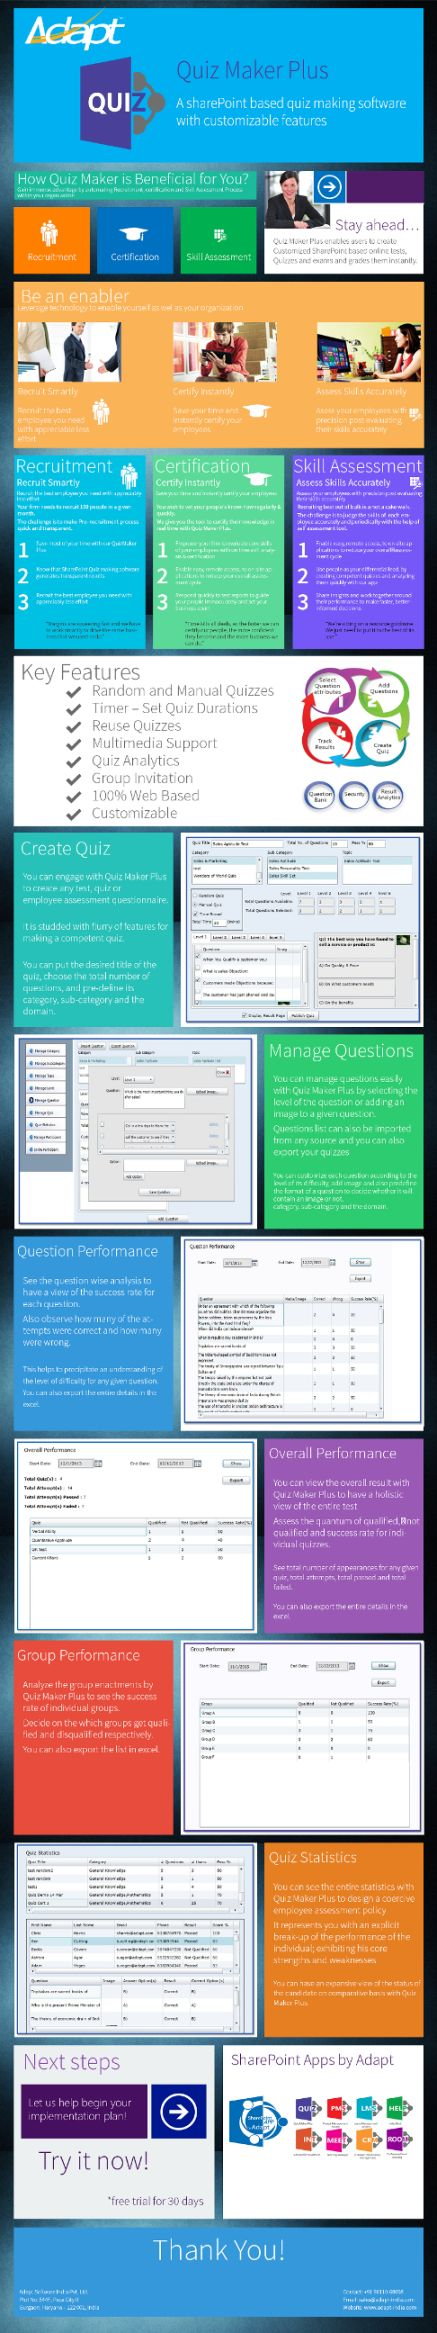 """***Sharepoint based quiz making software with customizable features *** """"Quiz maker plus enables users to create customized sharepoint based online tests, quizes and exams and grades them instantly.Engage with sharepoint based quiz maker plus to create any test, quiz or employee assesment questionnaire. http://www.adapt-india.com/blog/Infographics.aspx Enjoy!"""""""